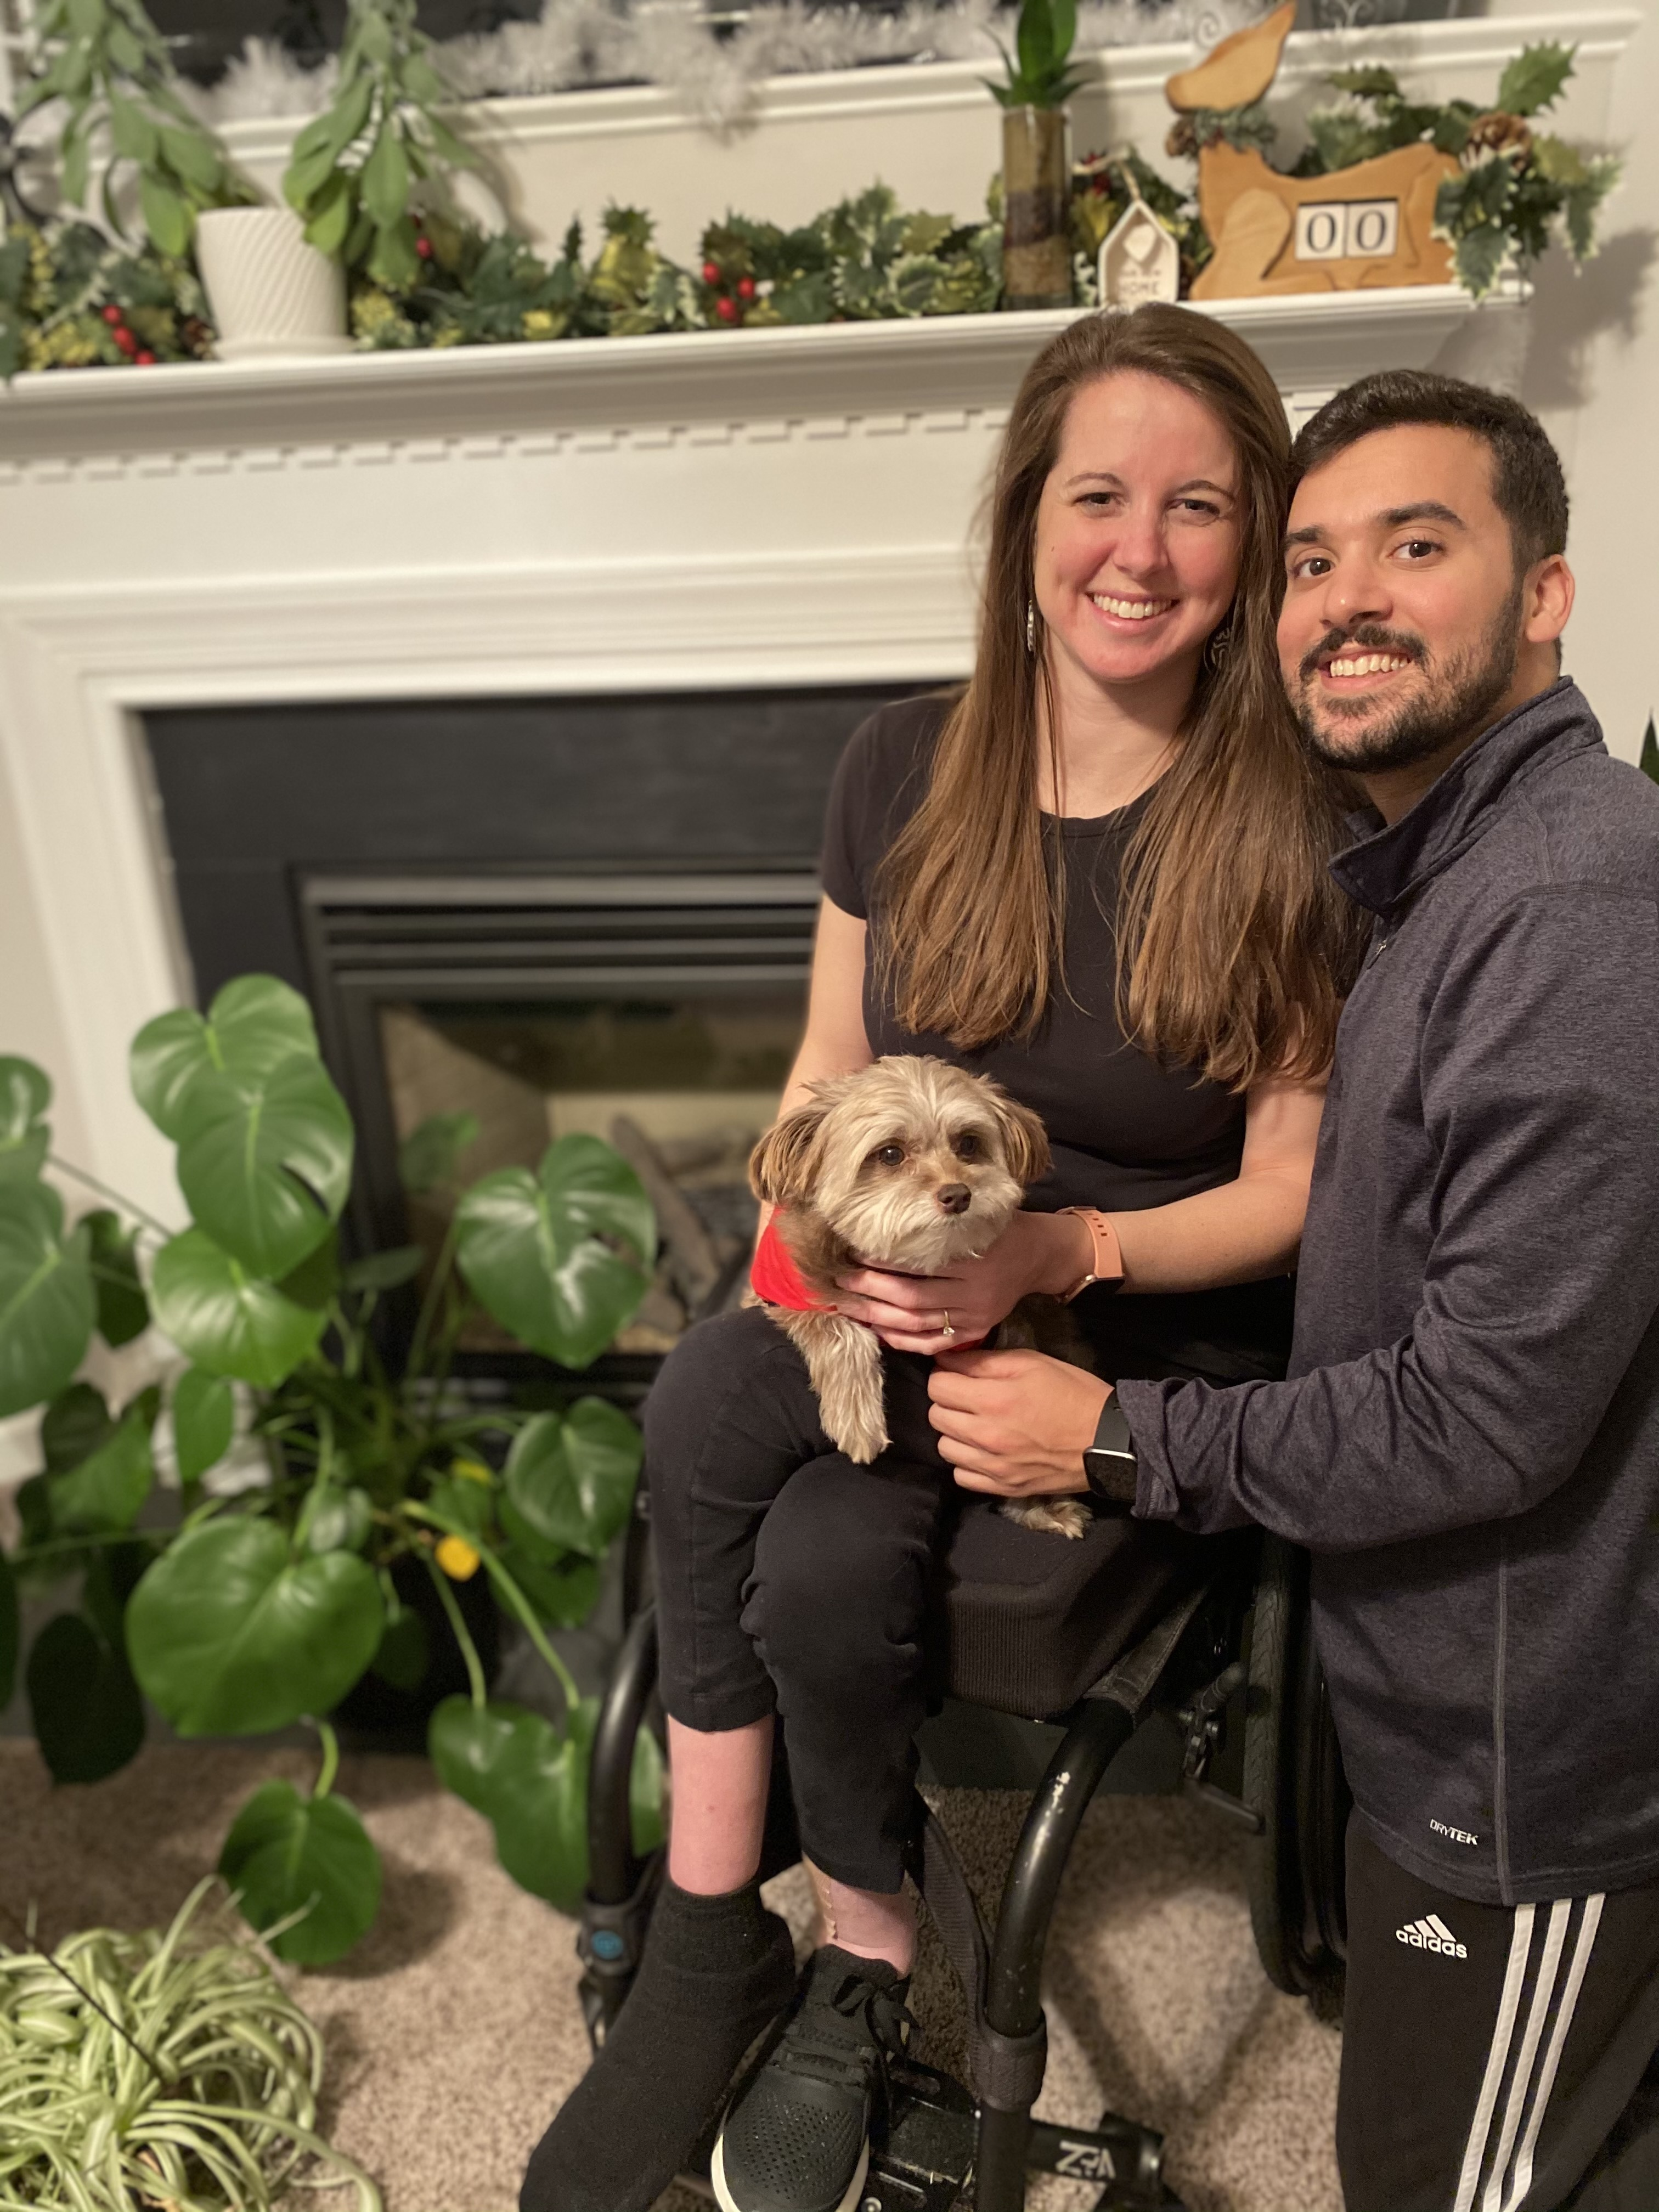 Kristin, her fiancé, and their dog smiling